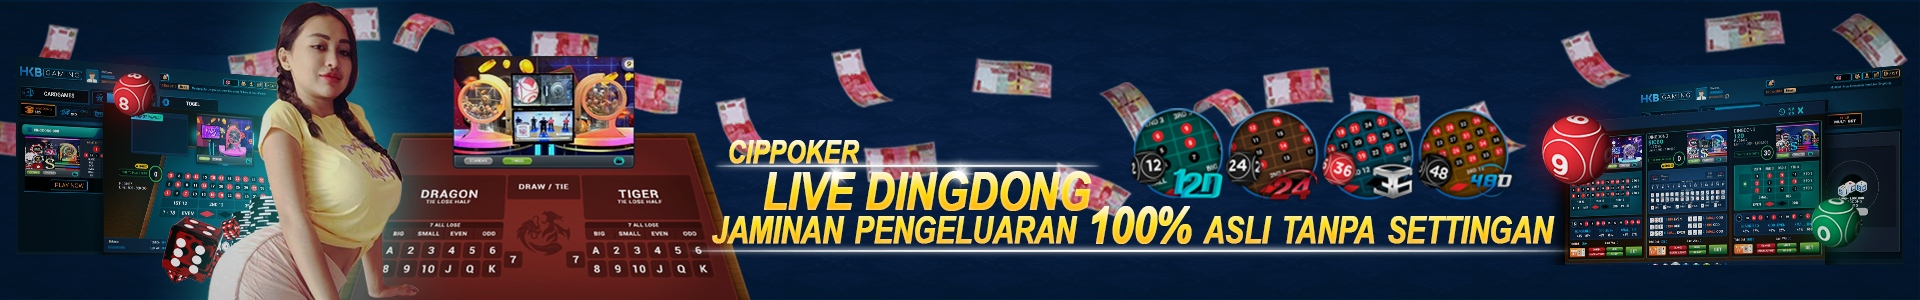 LIVE DING DONG CIPPOKER INDONESIA